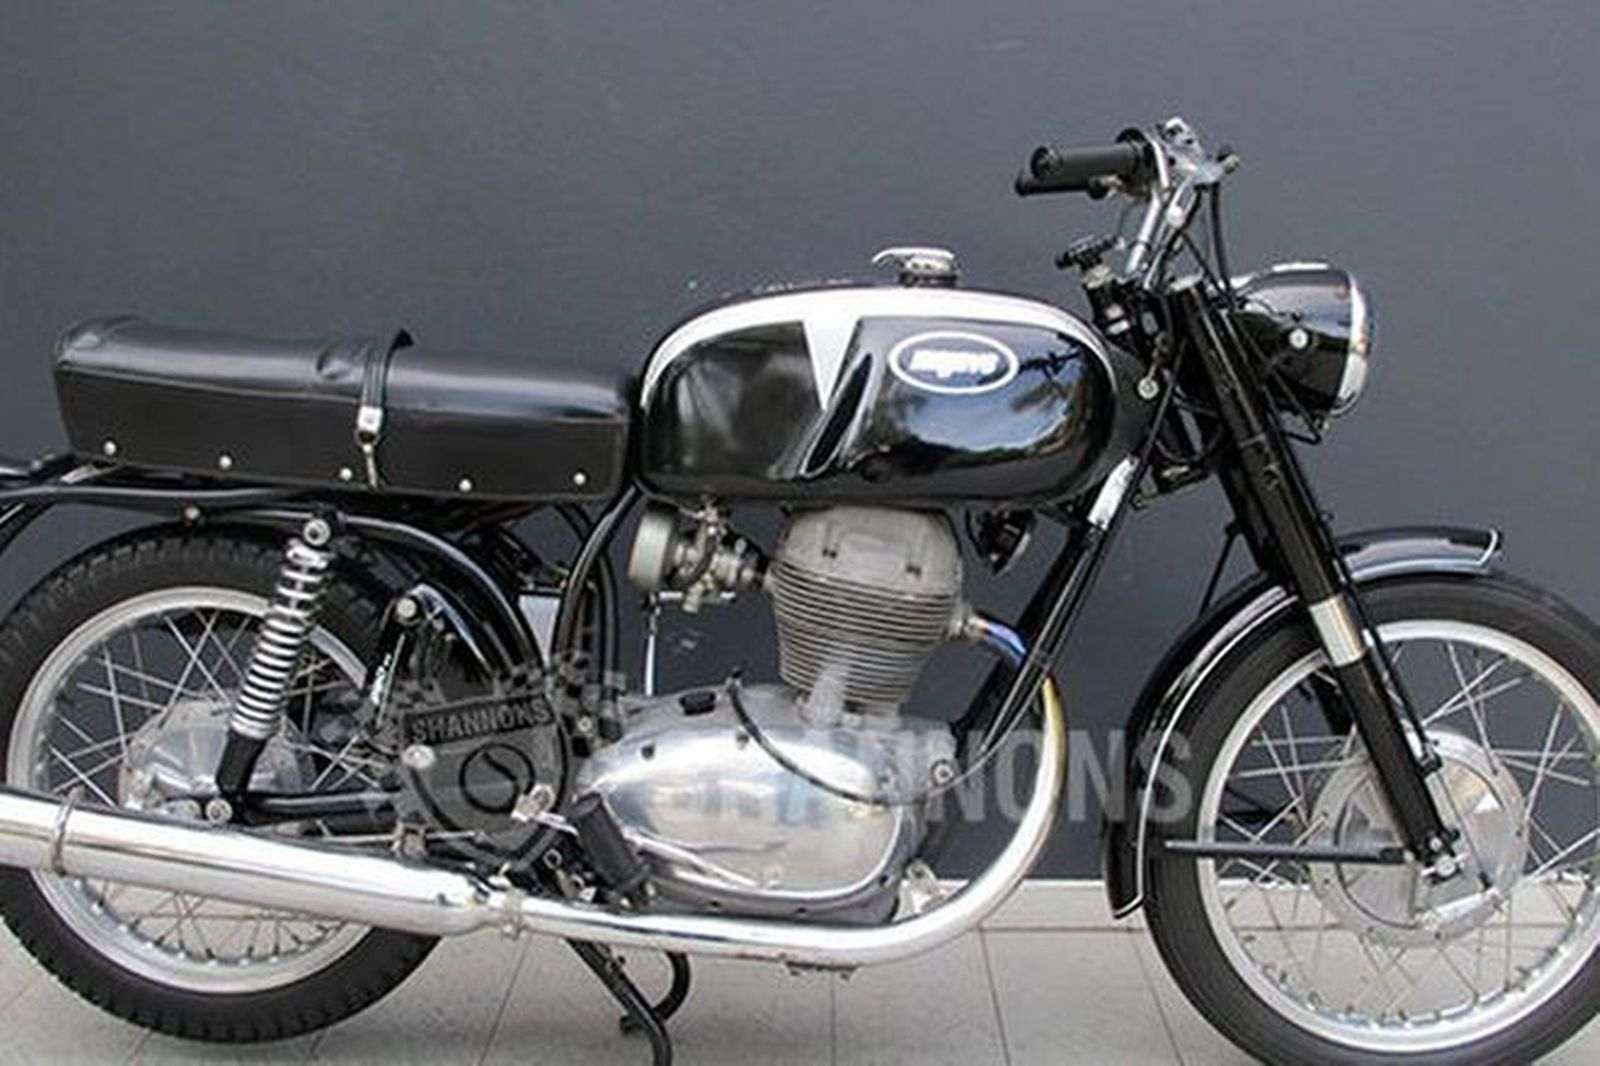 Sold Benelli Montgomery Wards 250cc Motorcycle Auctions